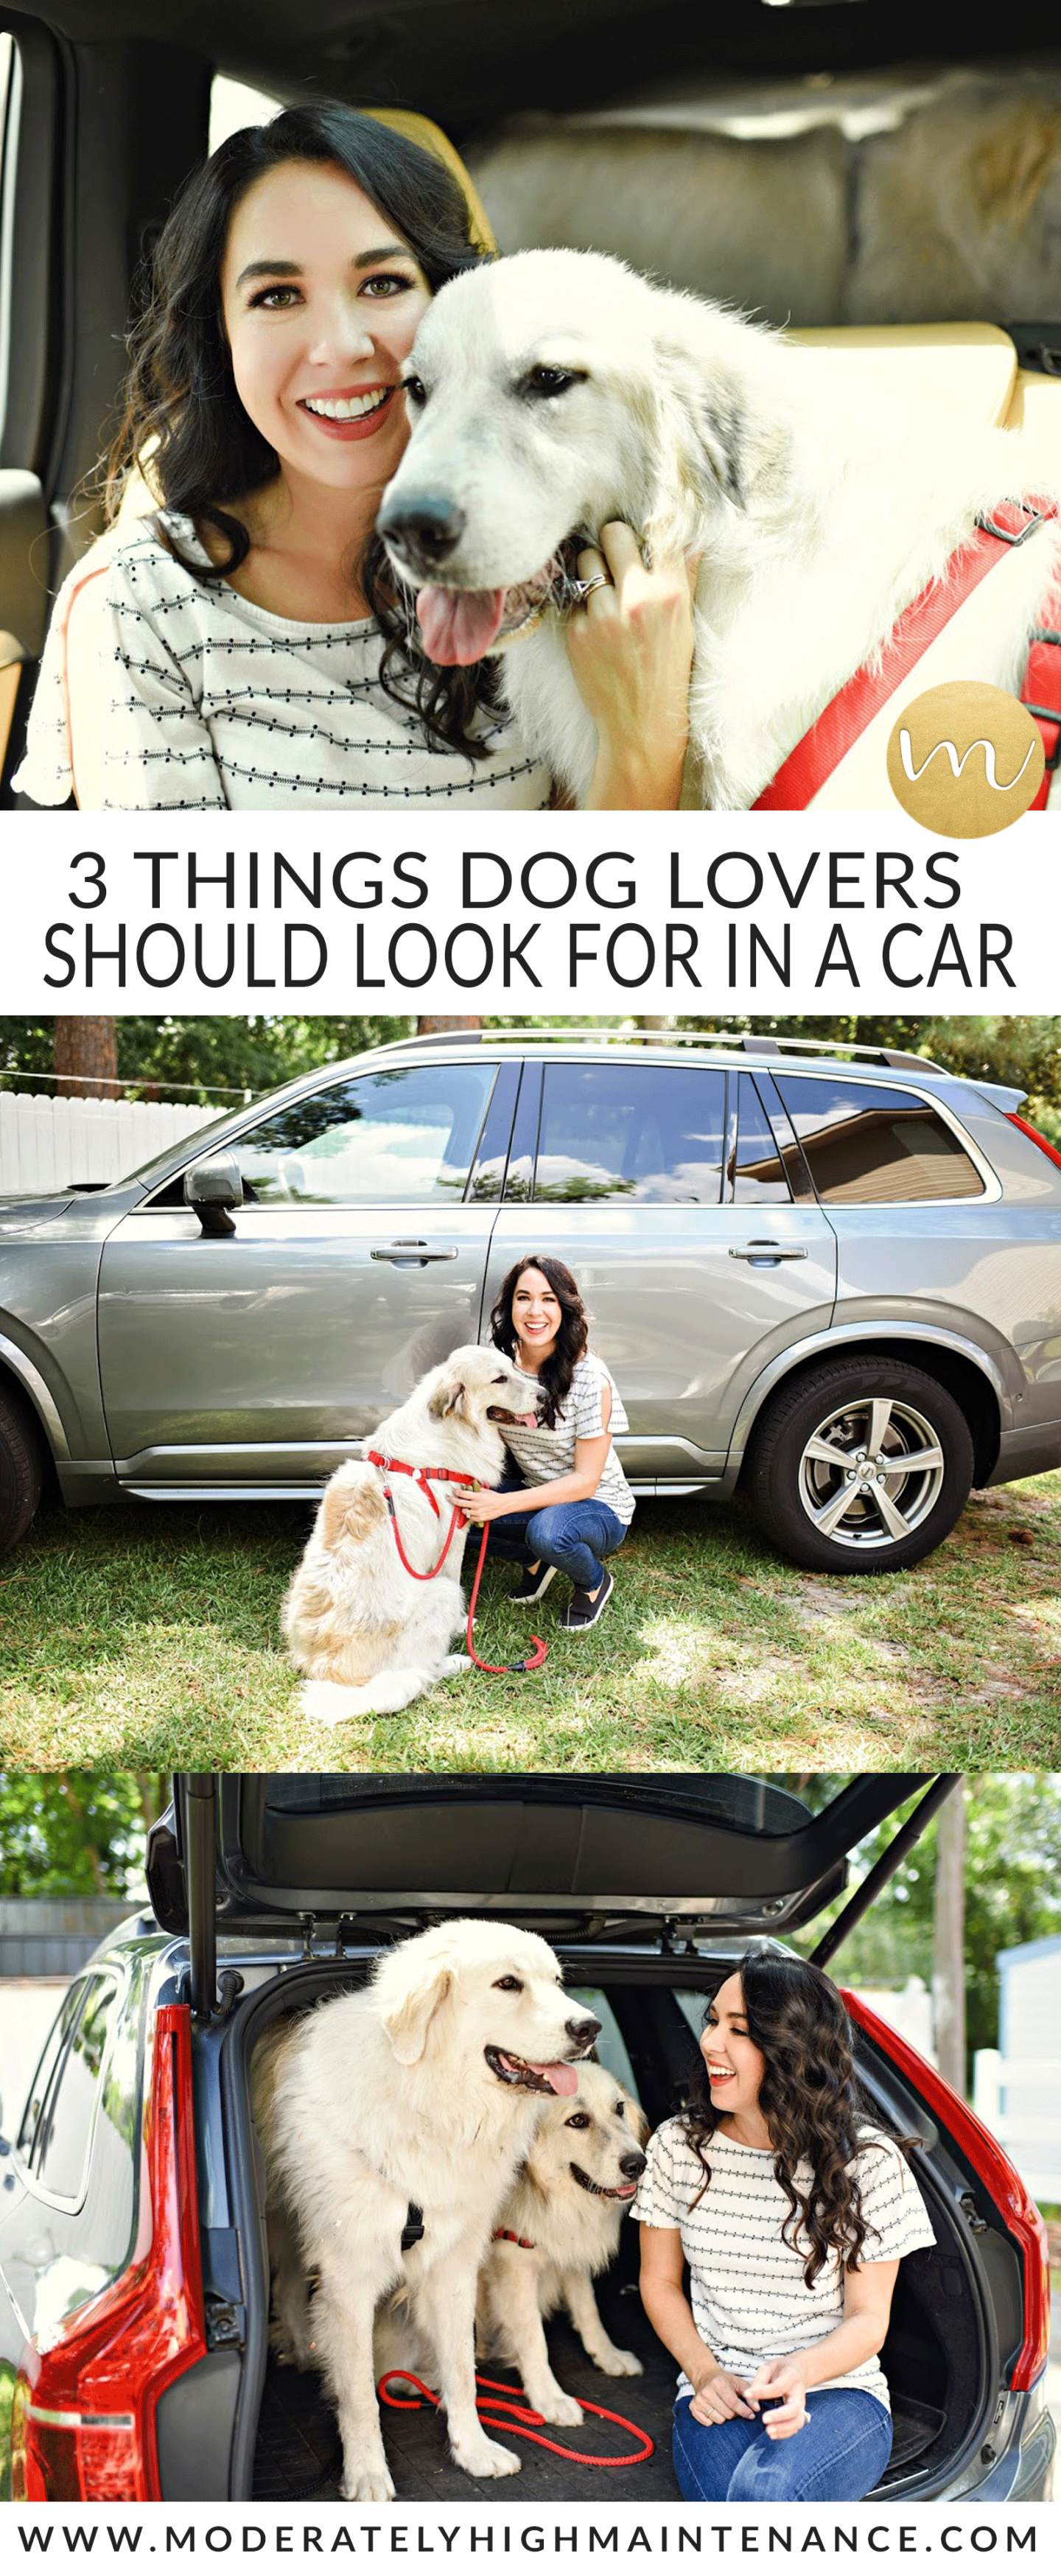 3 Things Dog Lovers Should Look for in a Car! @Autotrader #AutotraderDogDay #dogsofinstagram #dogstagram #NationalDogDay